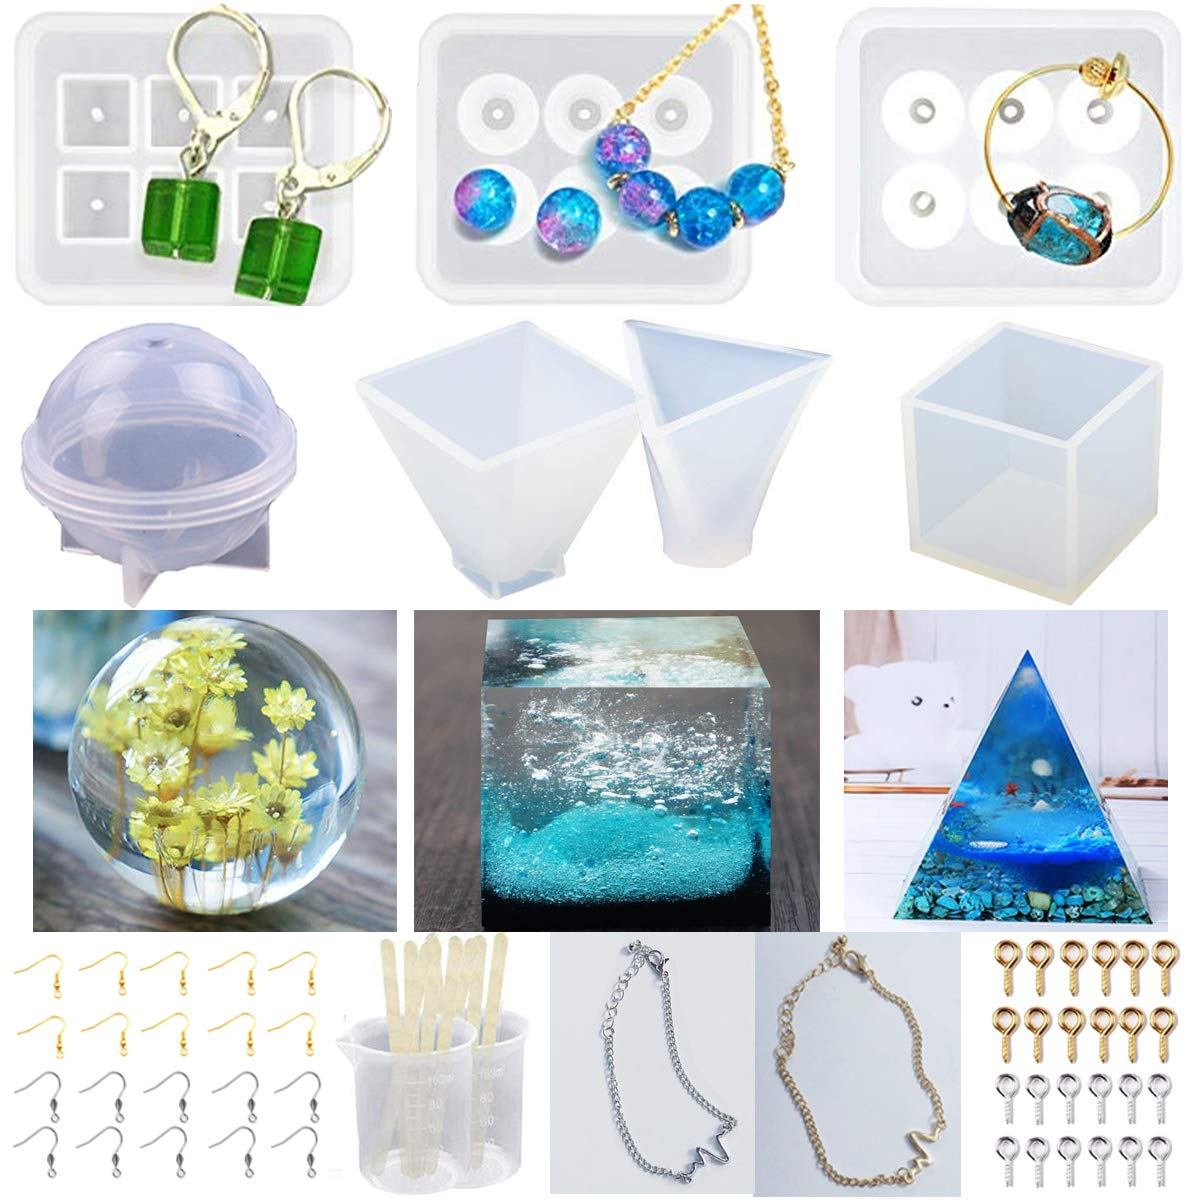 INSANY 7 Pack Silicone Mold Resin DIY Resin Casting Molds